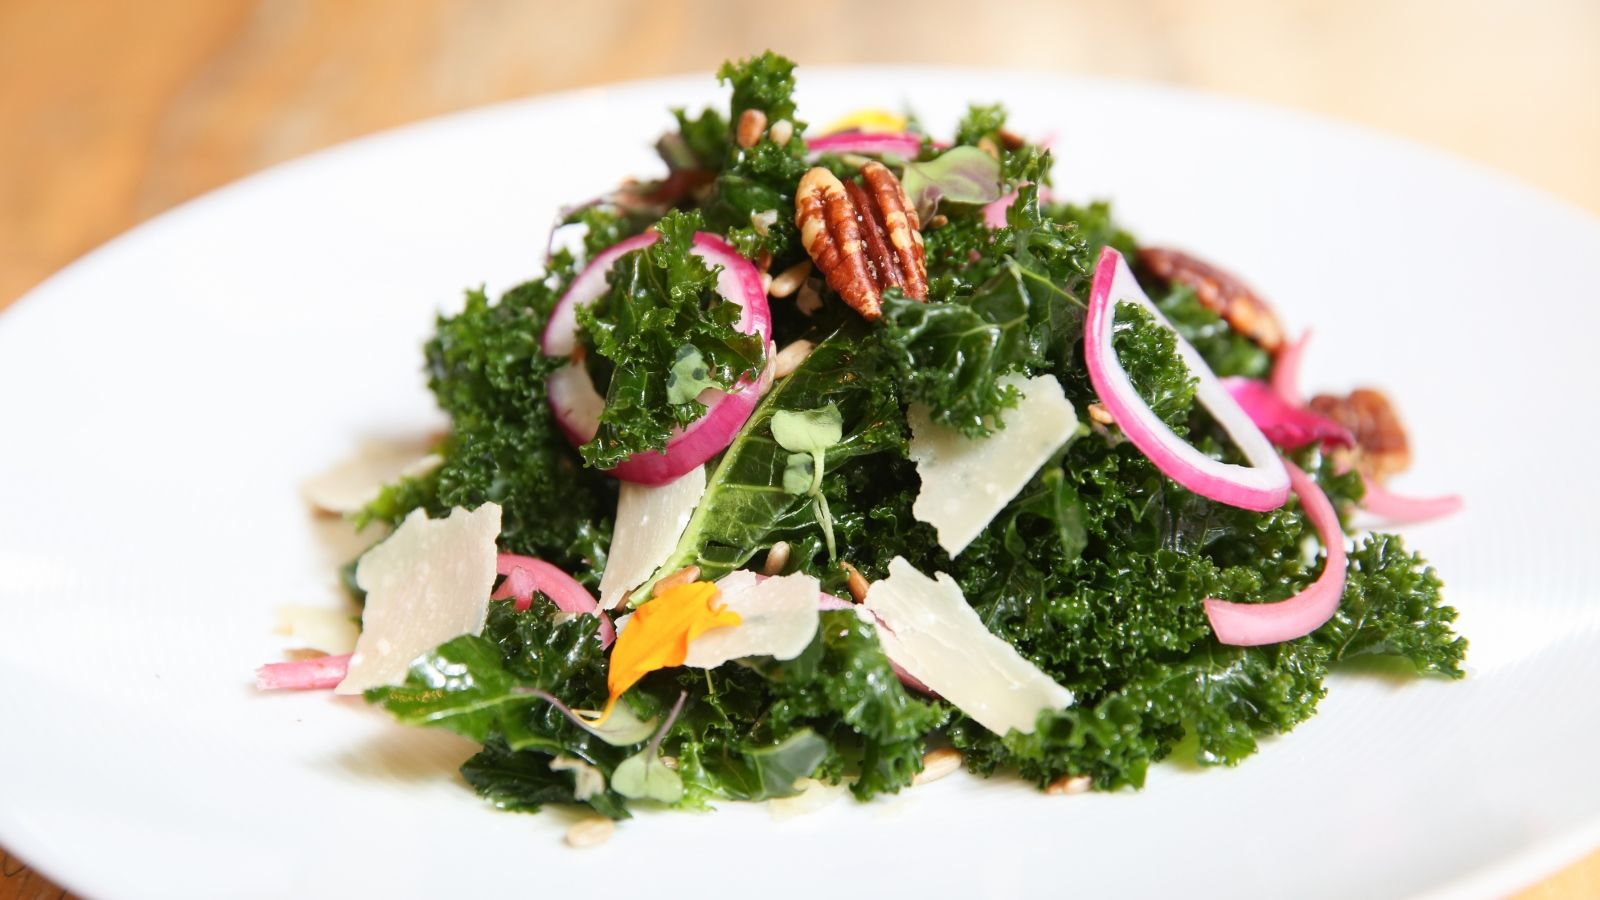 Yuzu Marinated Kale Salad at Grill Restaurant at The St. Regis San Francisco